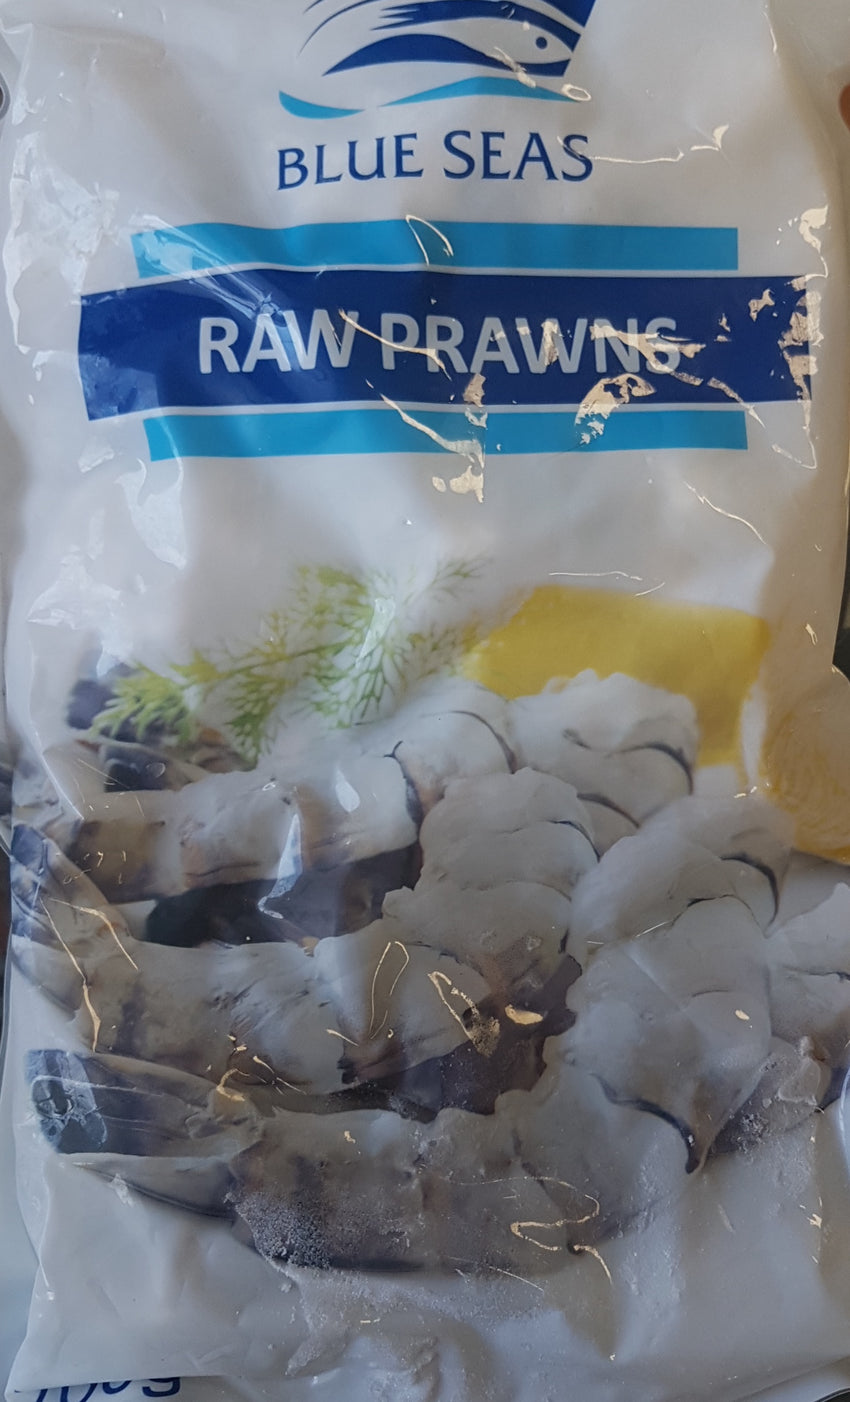 Raw Prawns Frozen, Blue Seas, 700g